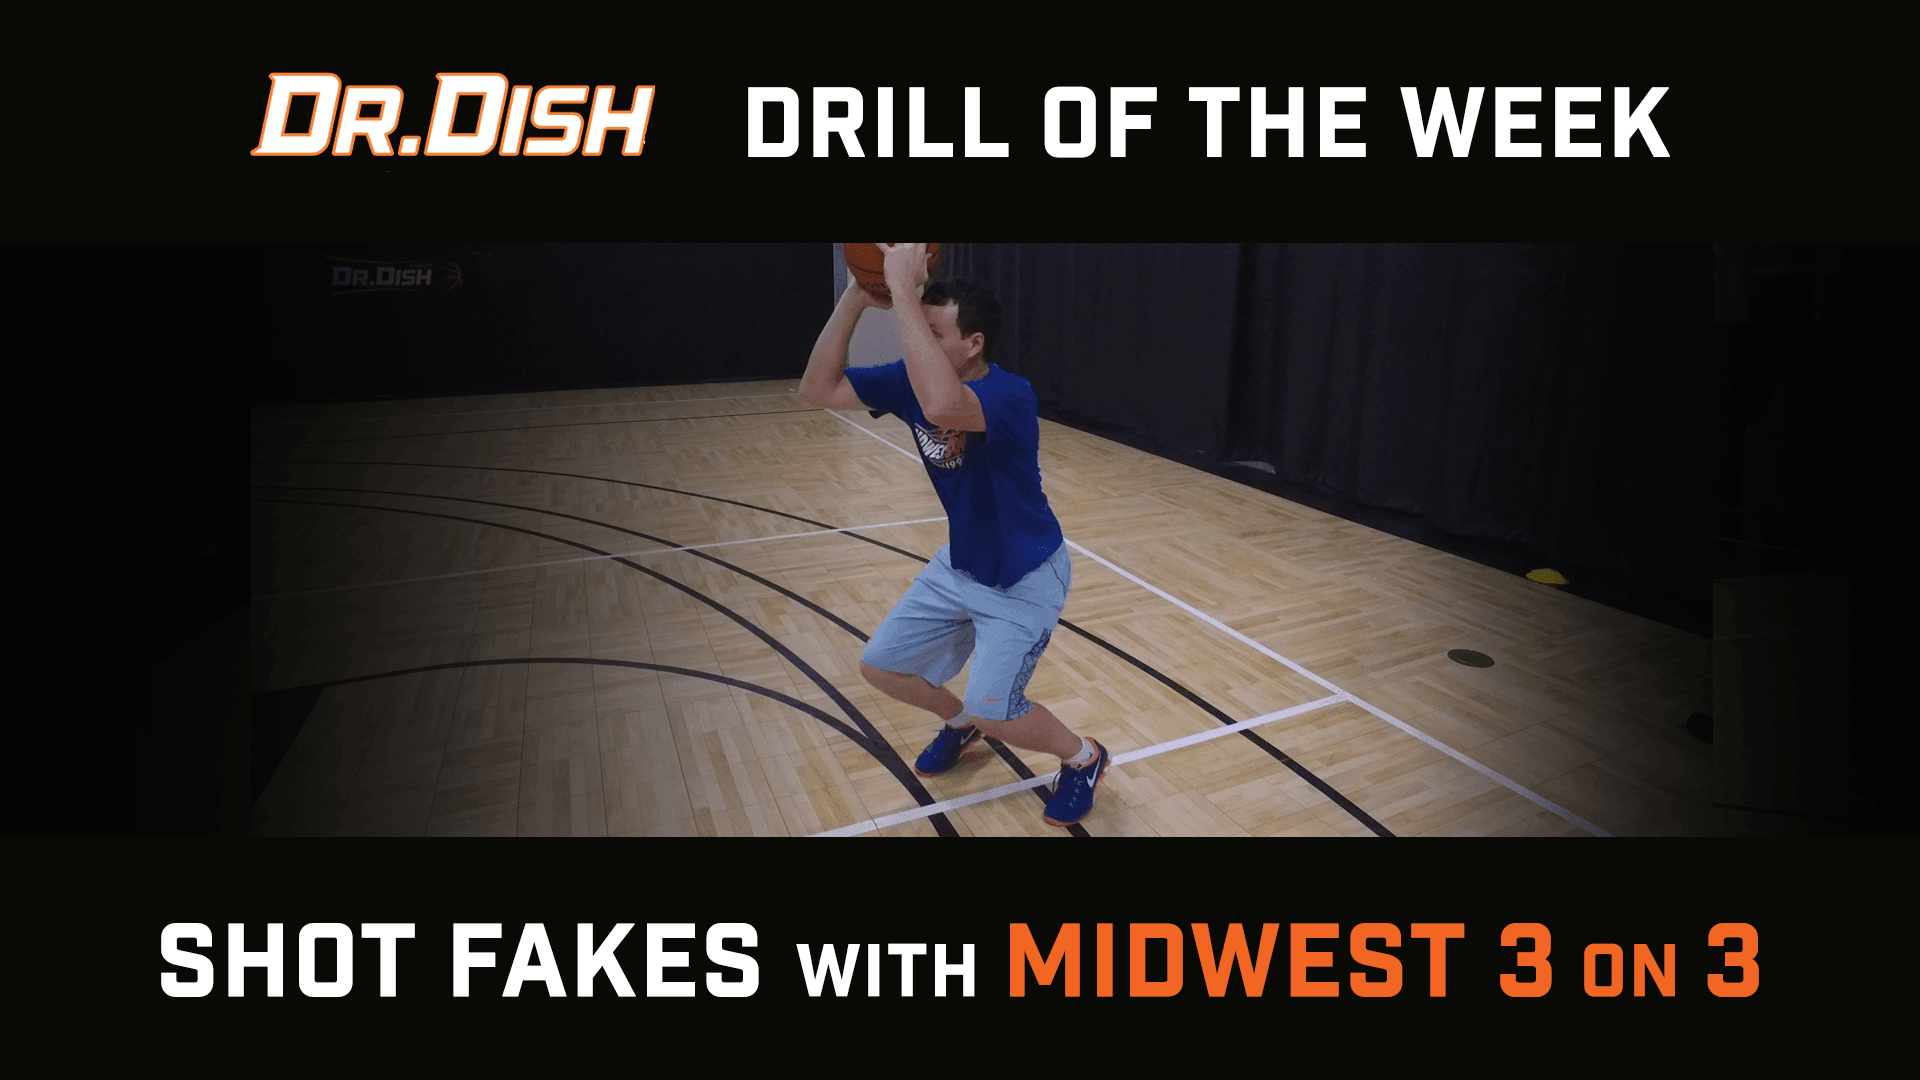 Basketball Drills: Utilizing the Shot Fake with Midwest 3 on 3